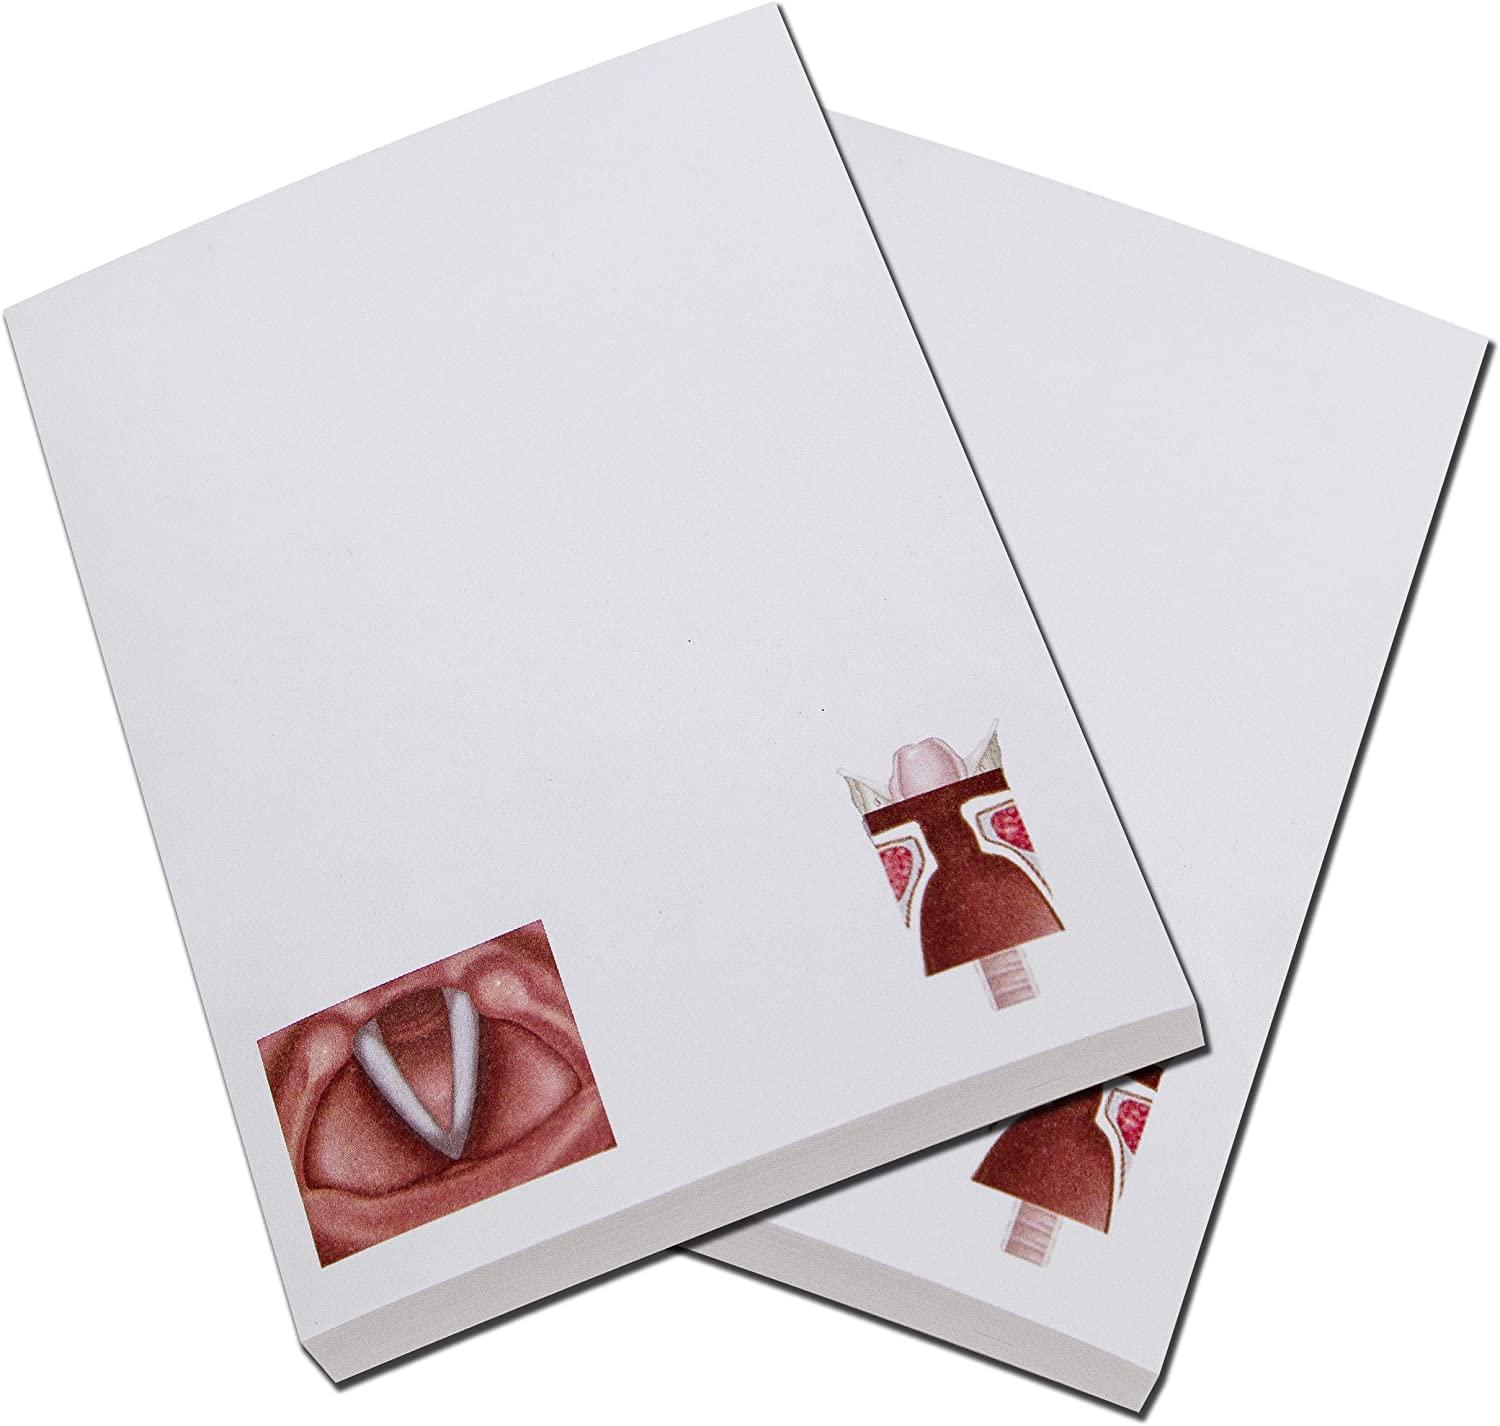 Animated Flip Our shop OFFers the best service Book Vocal Fold El Paso Mall Note Pad Voice Memo Pad-notebook-1